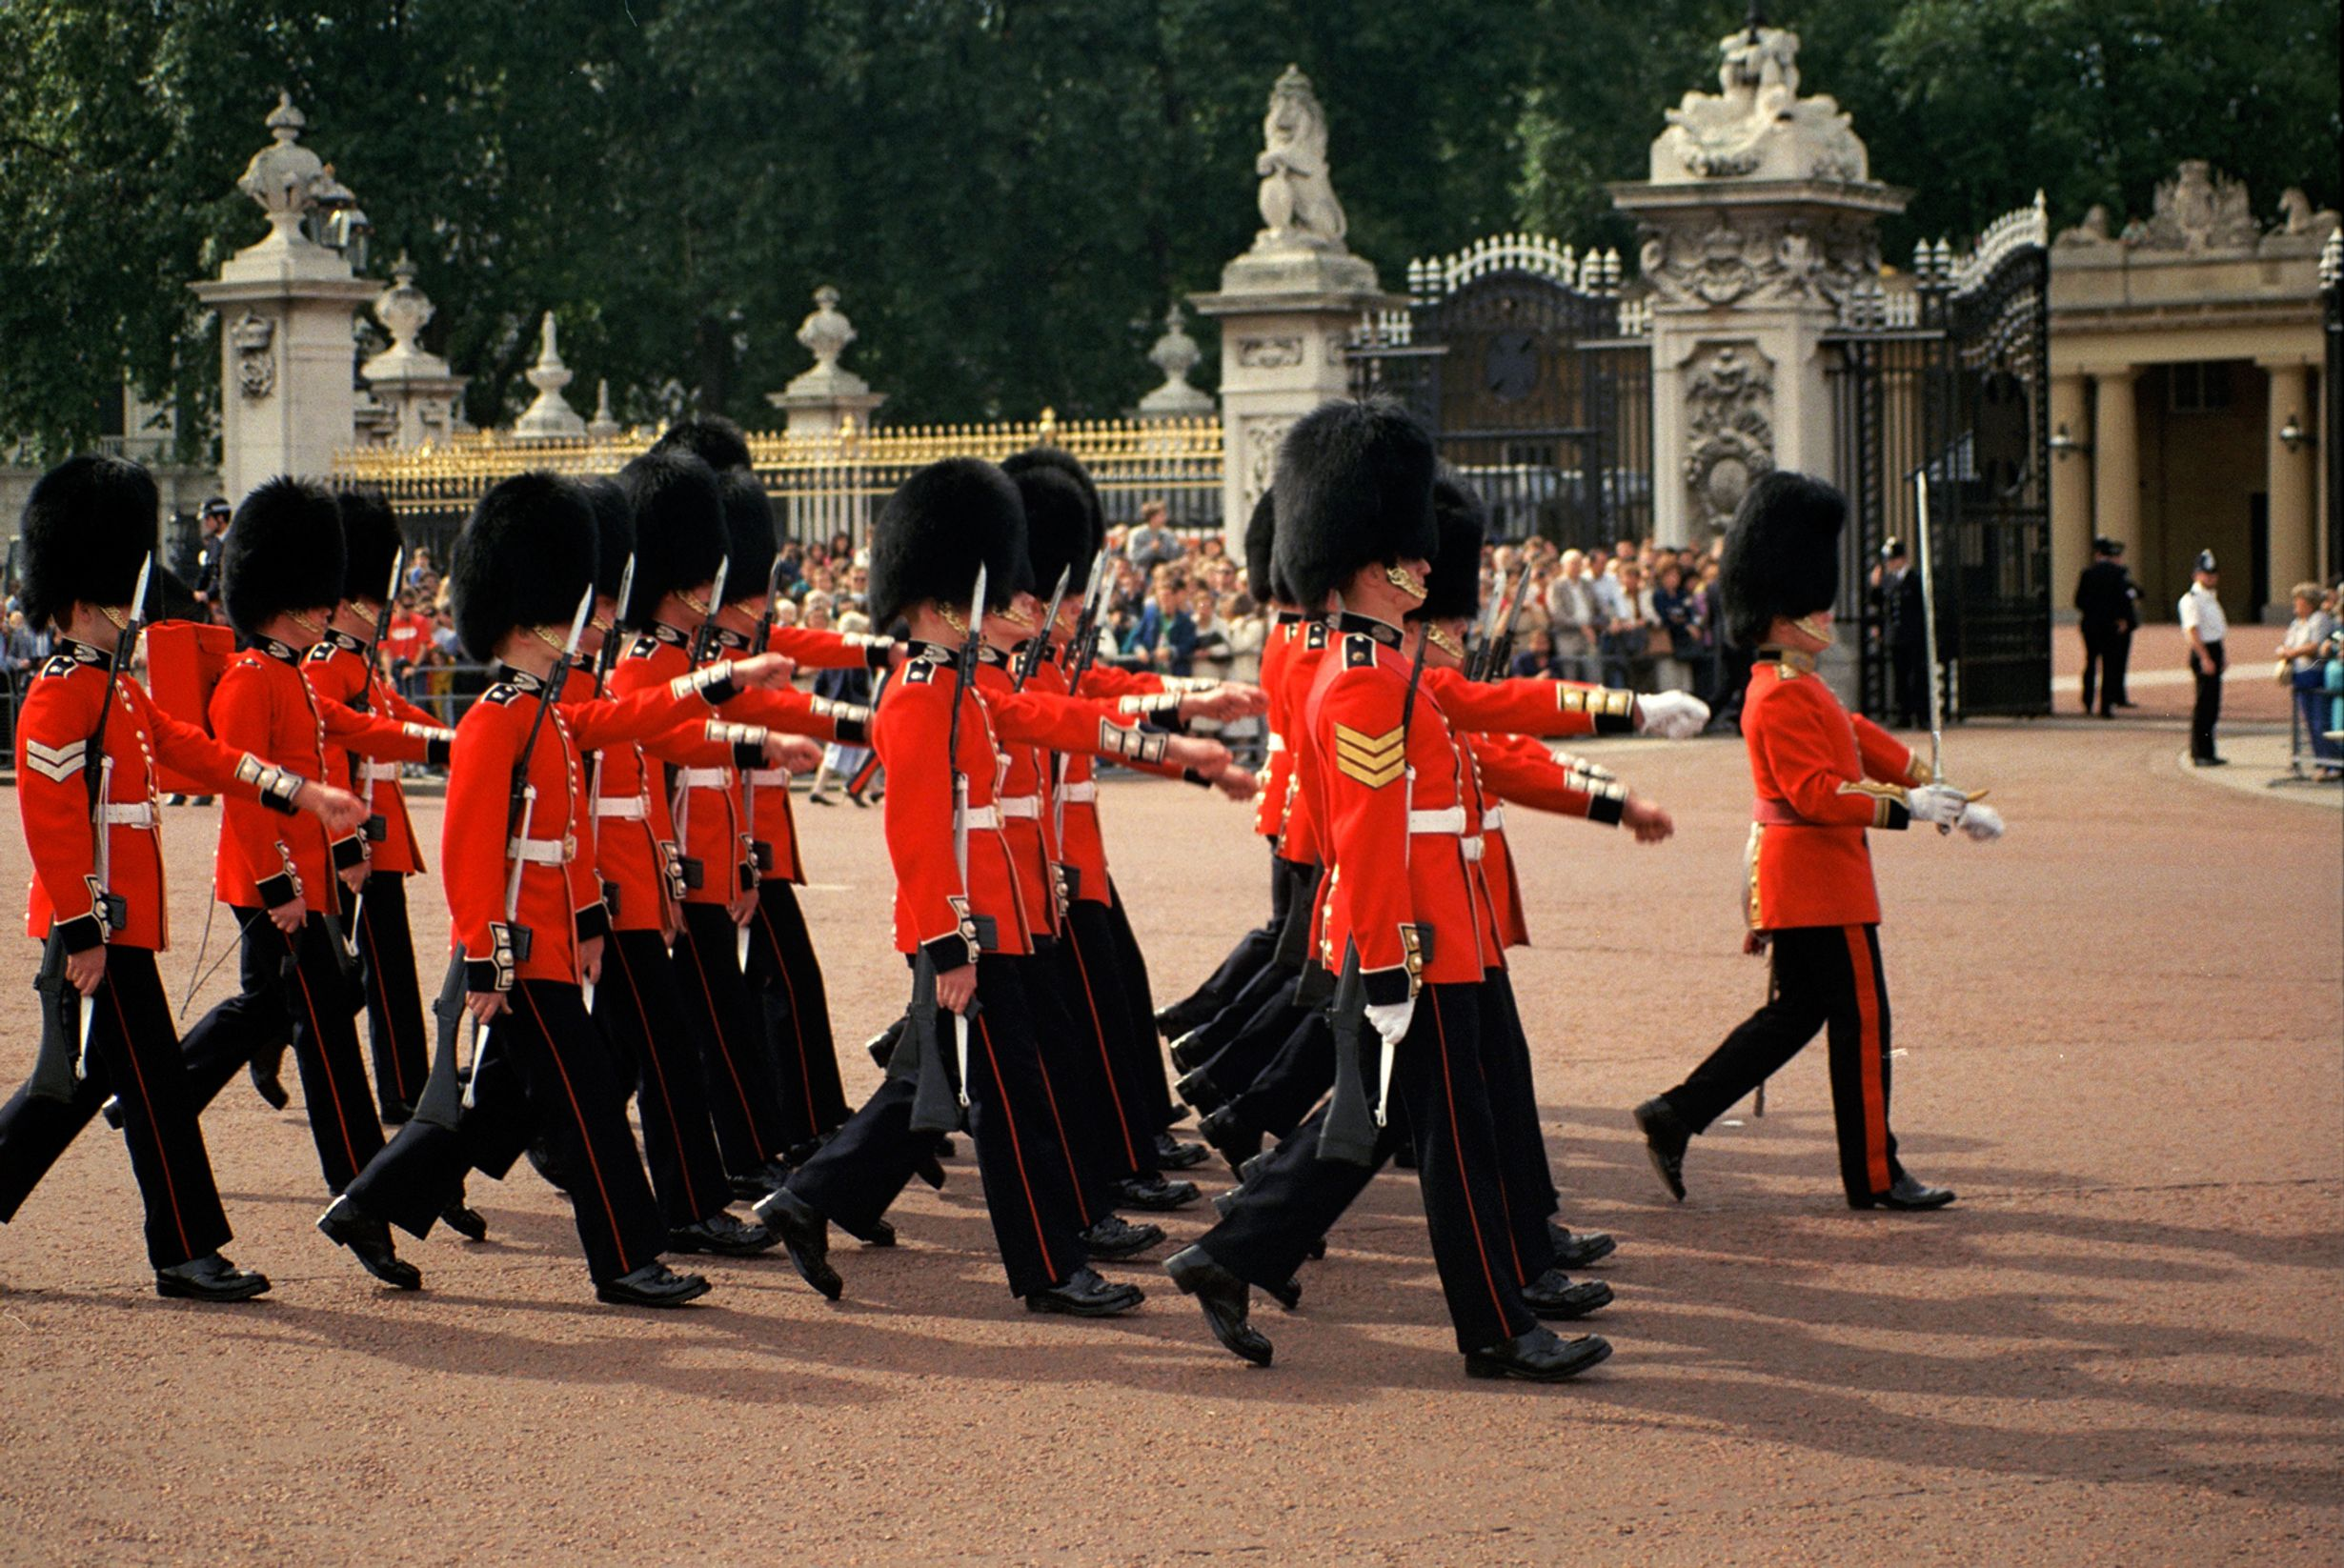 changing of the guards ceremony at Buckingham Palace